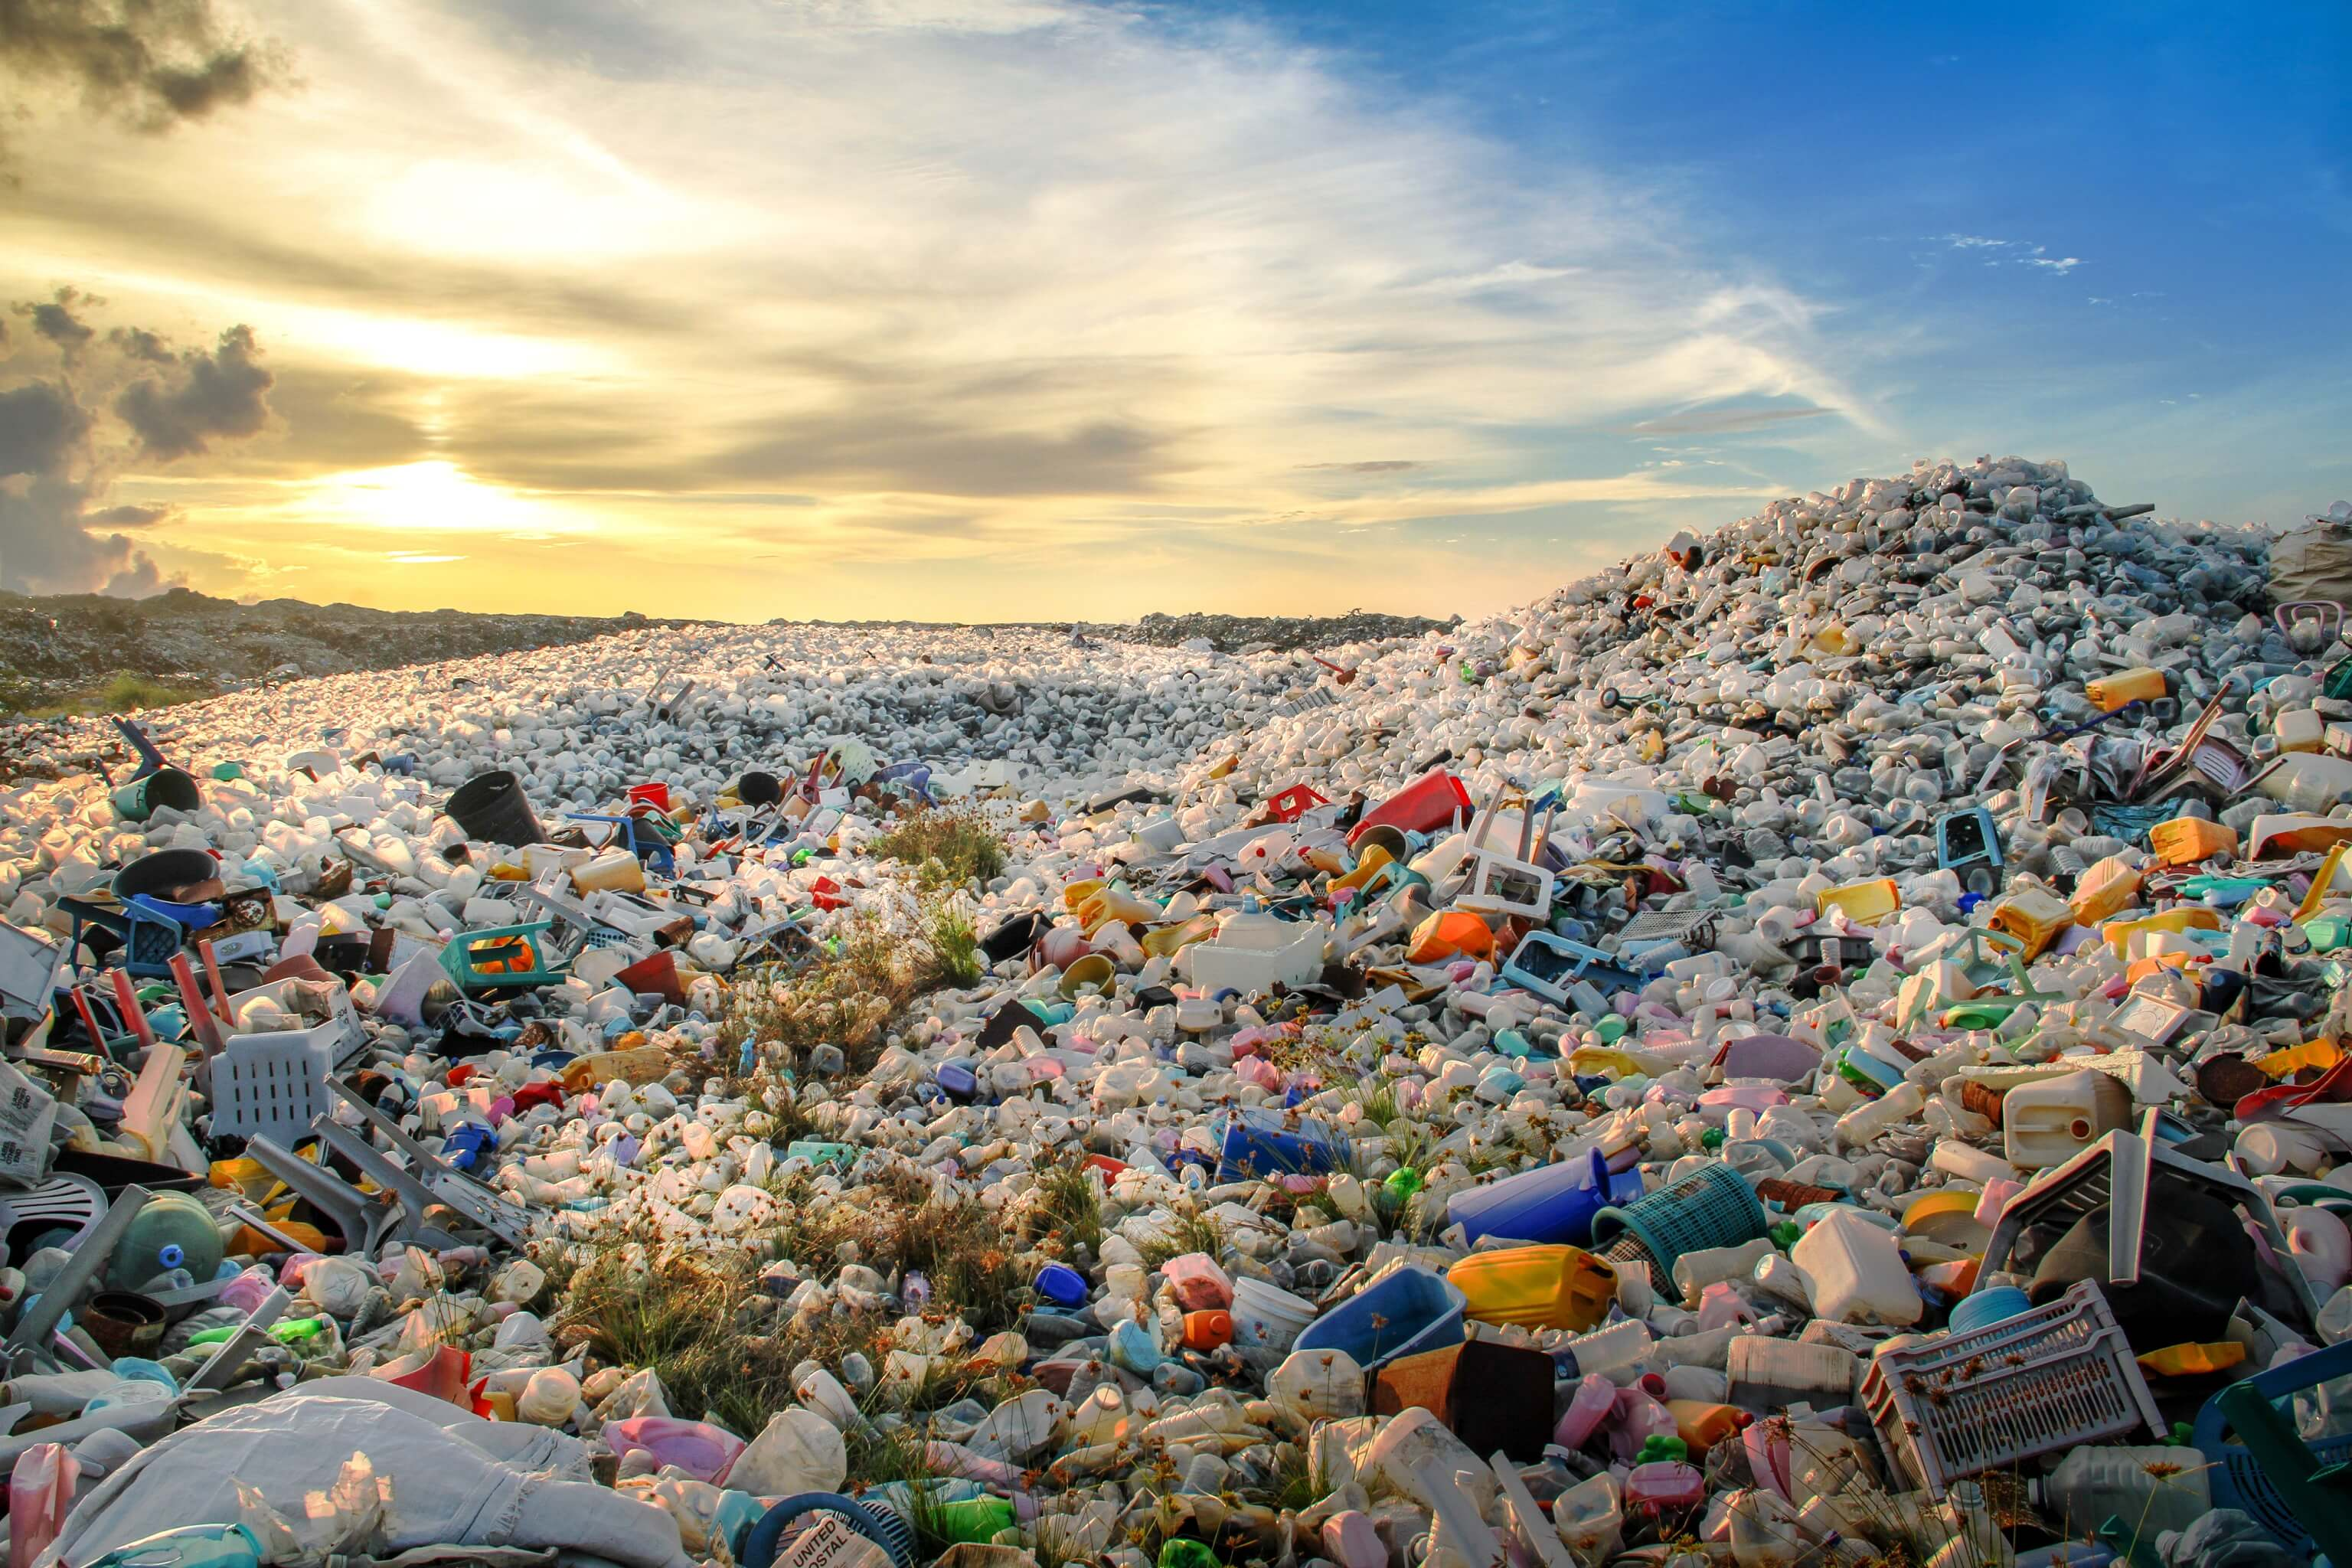 Study Melting Plastic Waste Could Fuel Cars And Heat Homes